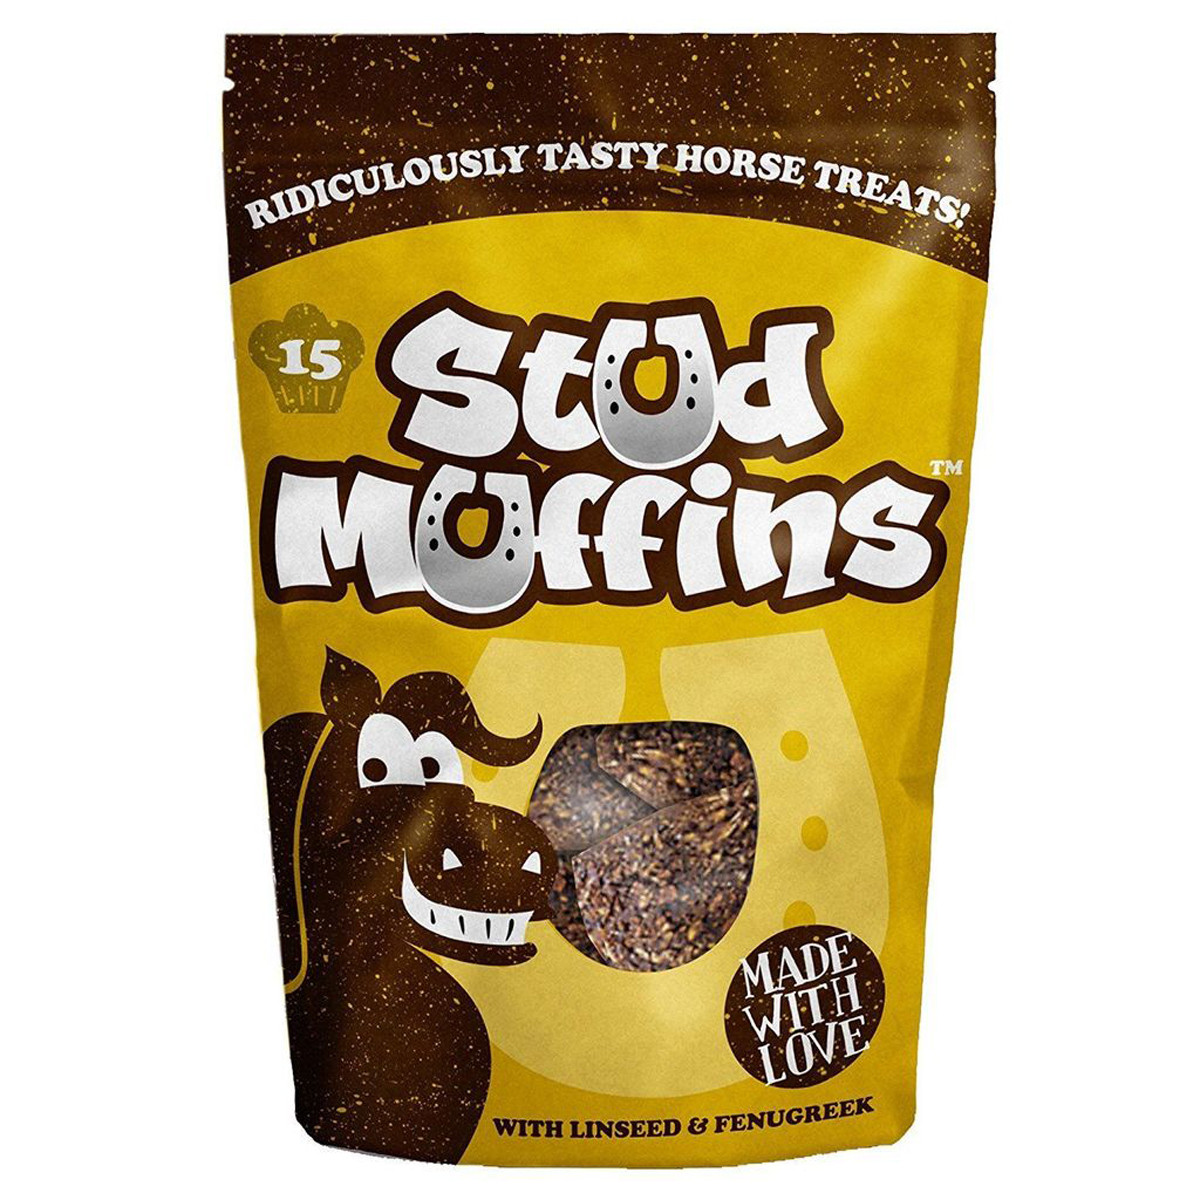 Stud Muffins 15 Pack Horse Muffins